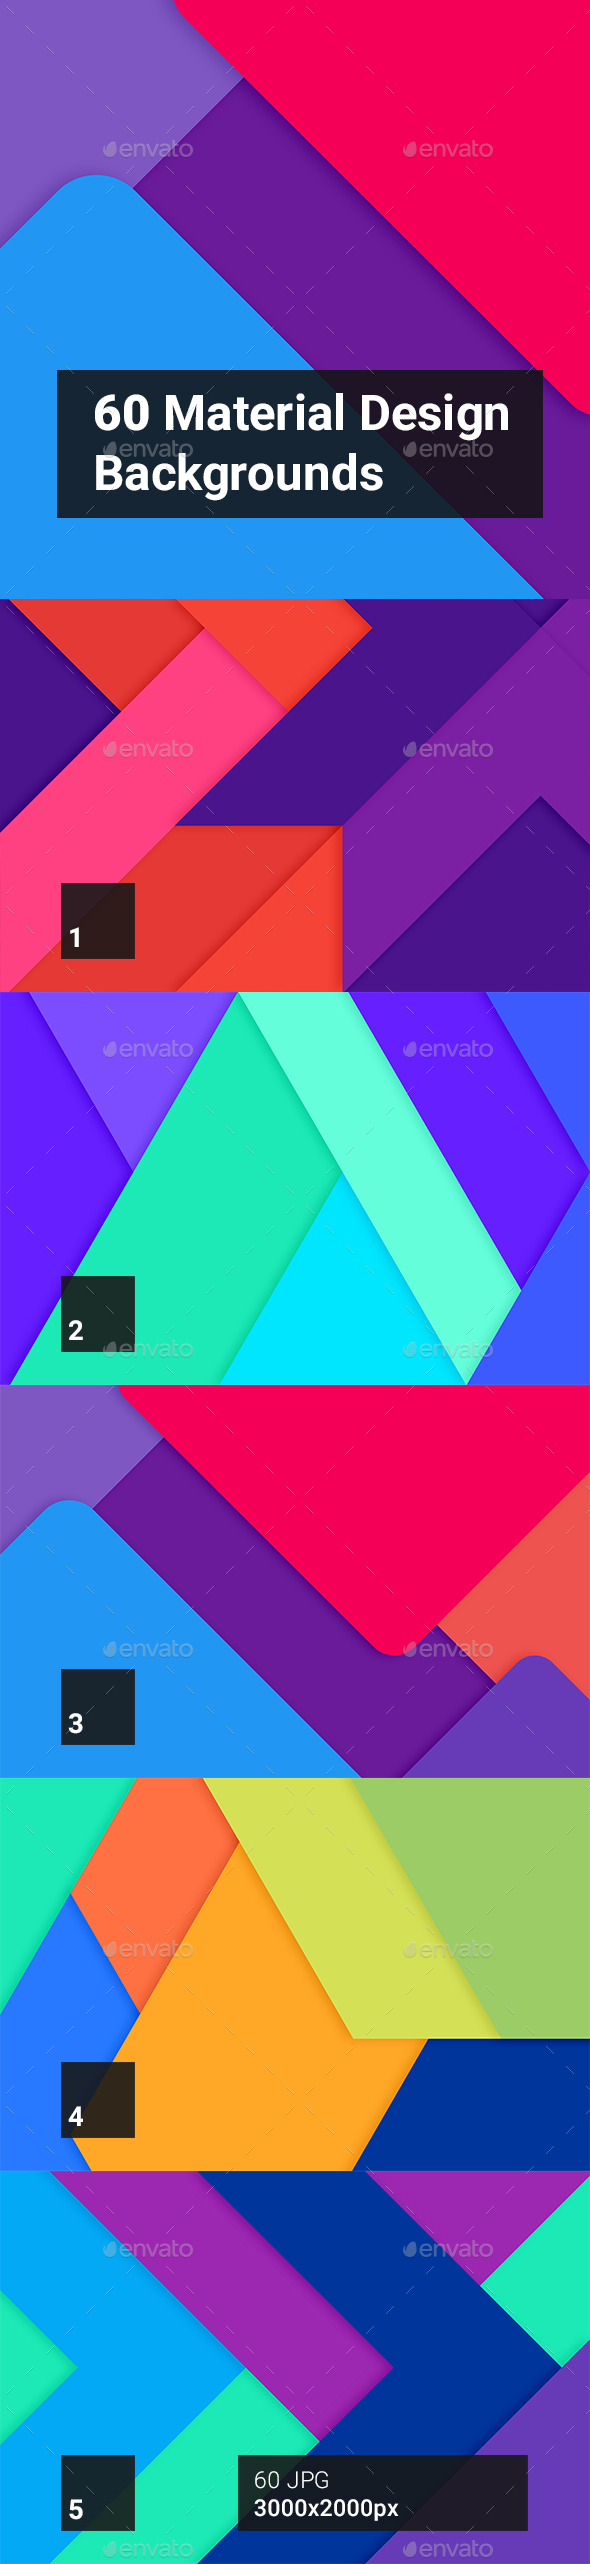 60 Material Design Backgrounds - Abstract Backgrounds